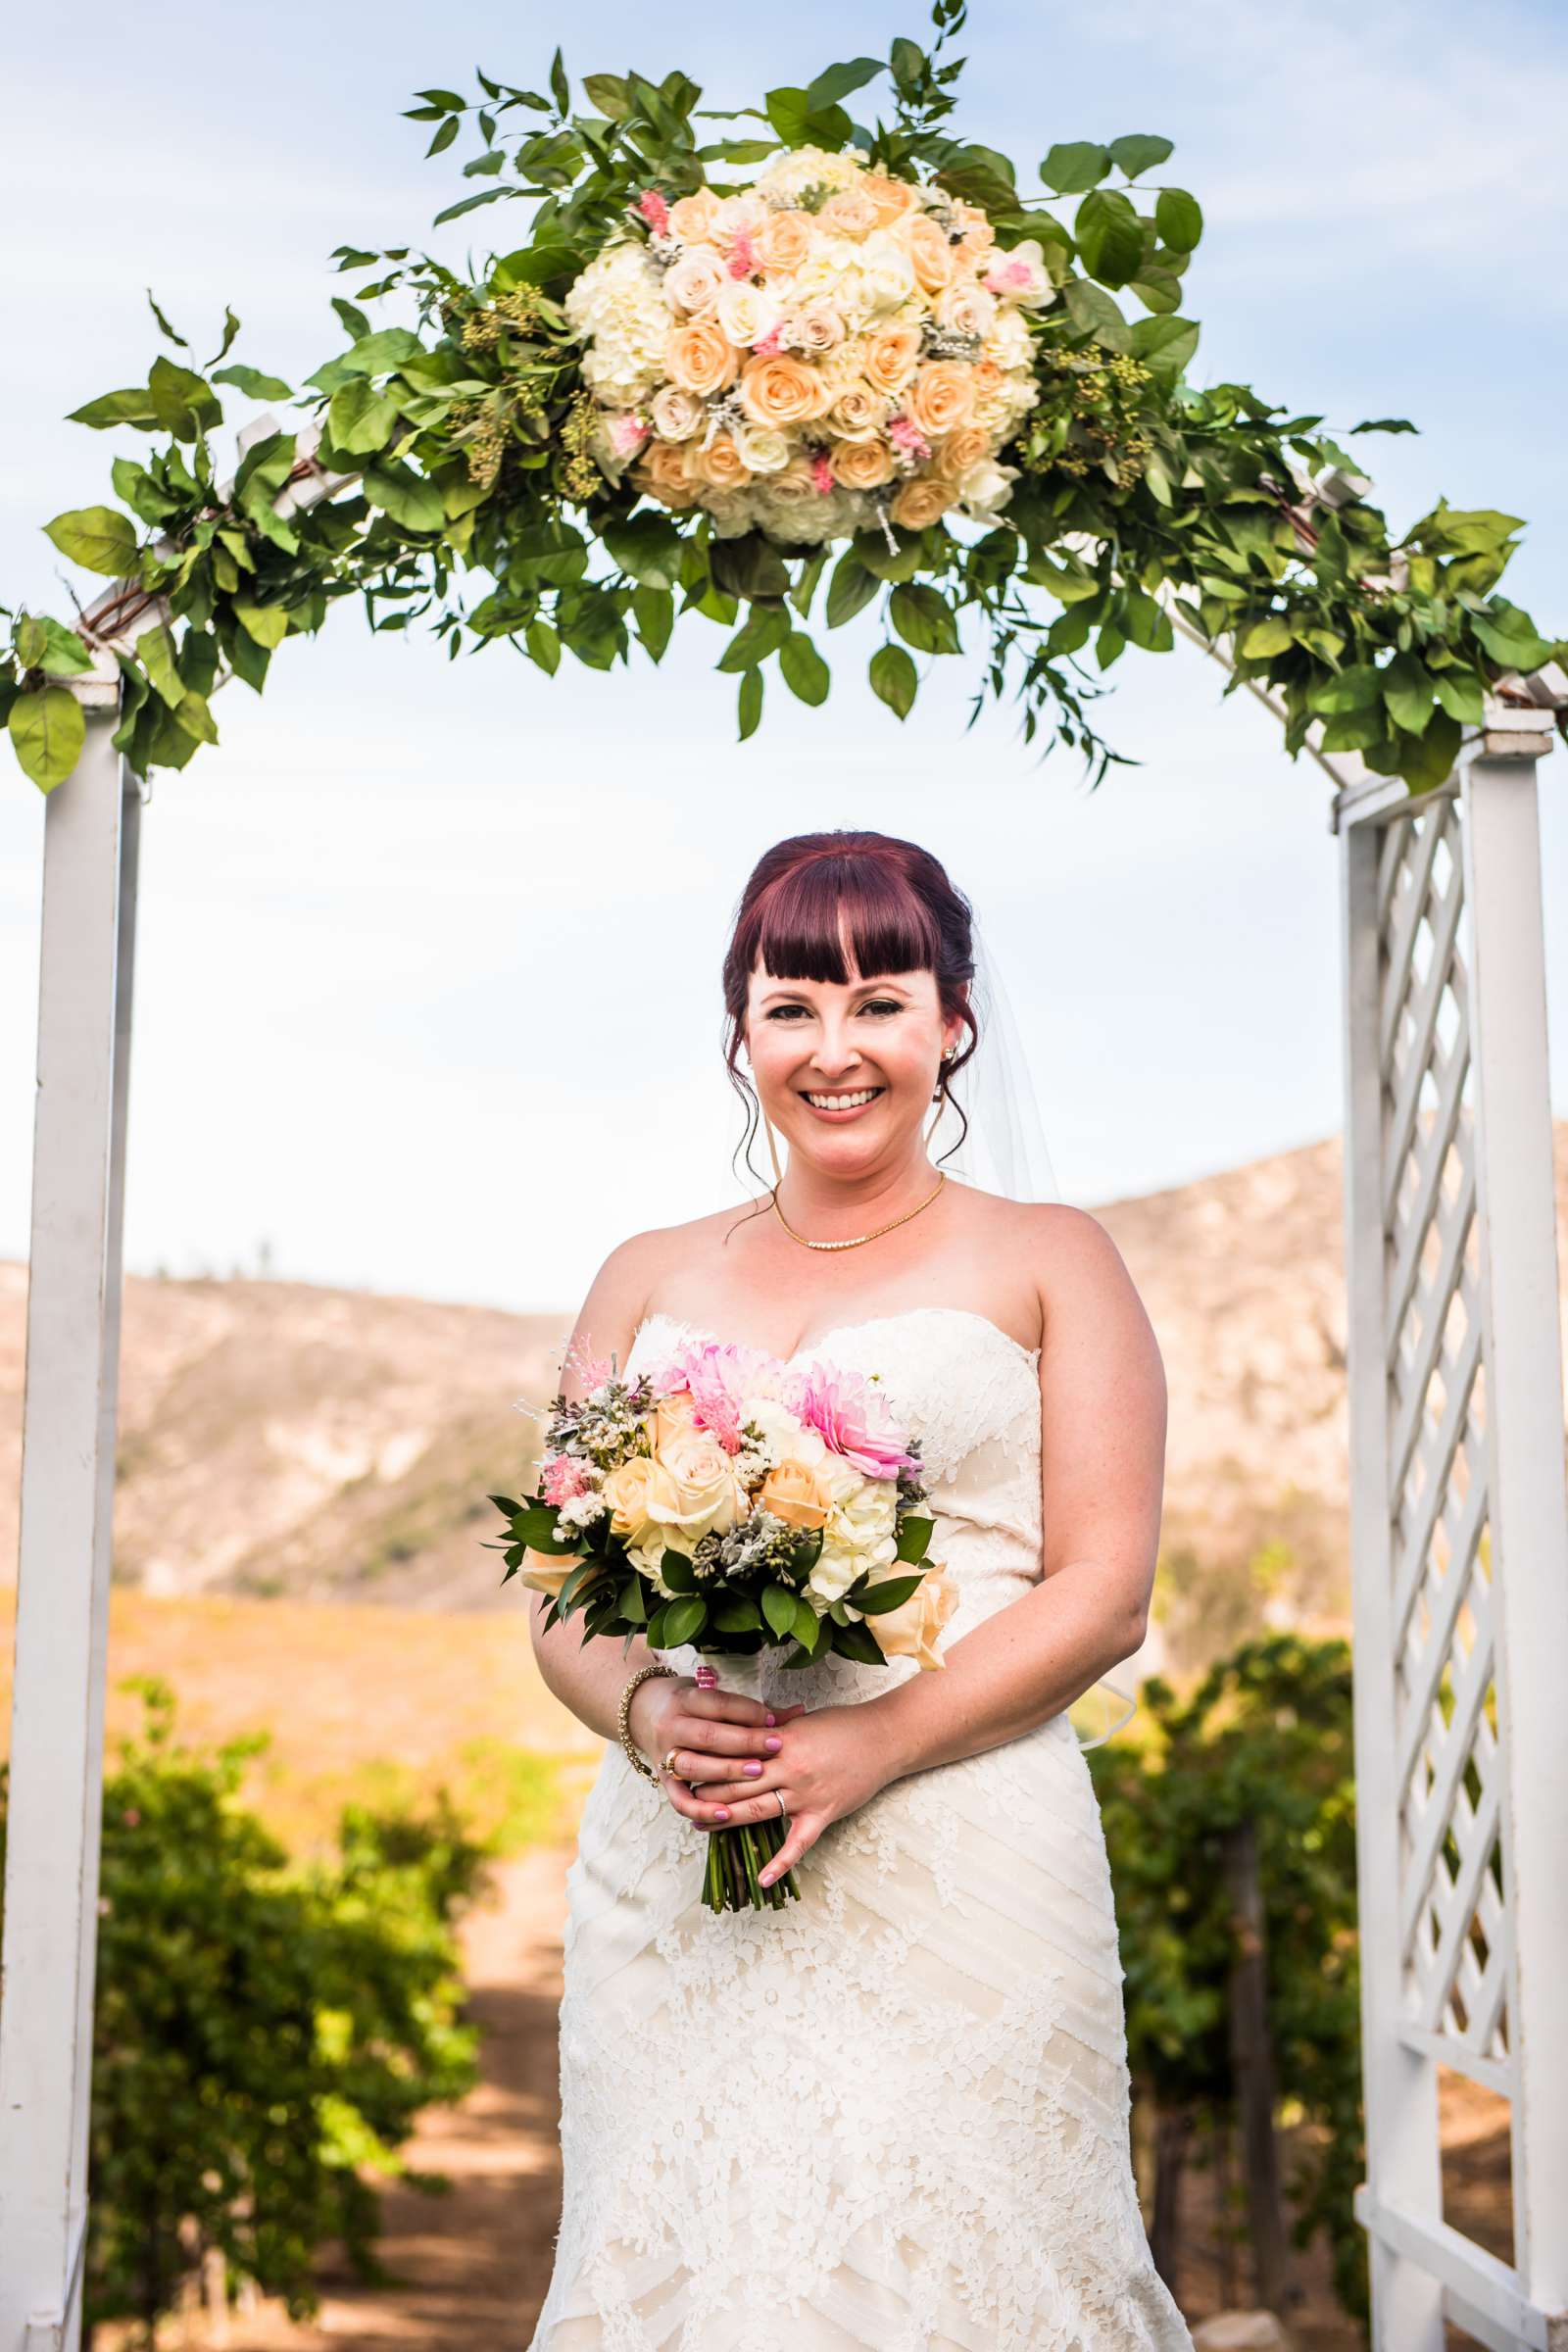 Orfila Vineyards Wedding, Tulasi and Richard Wedding Photo #48 by True Photography